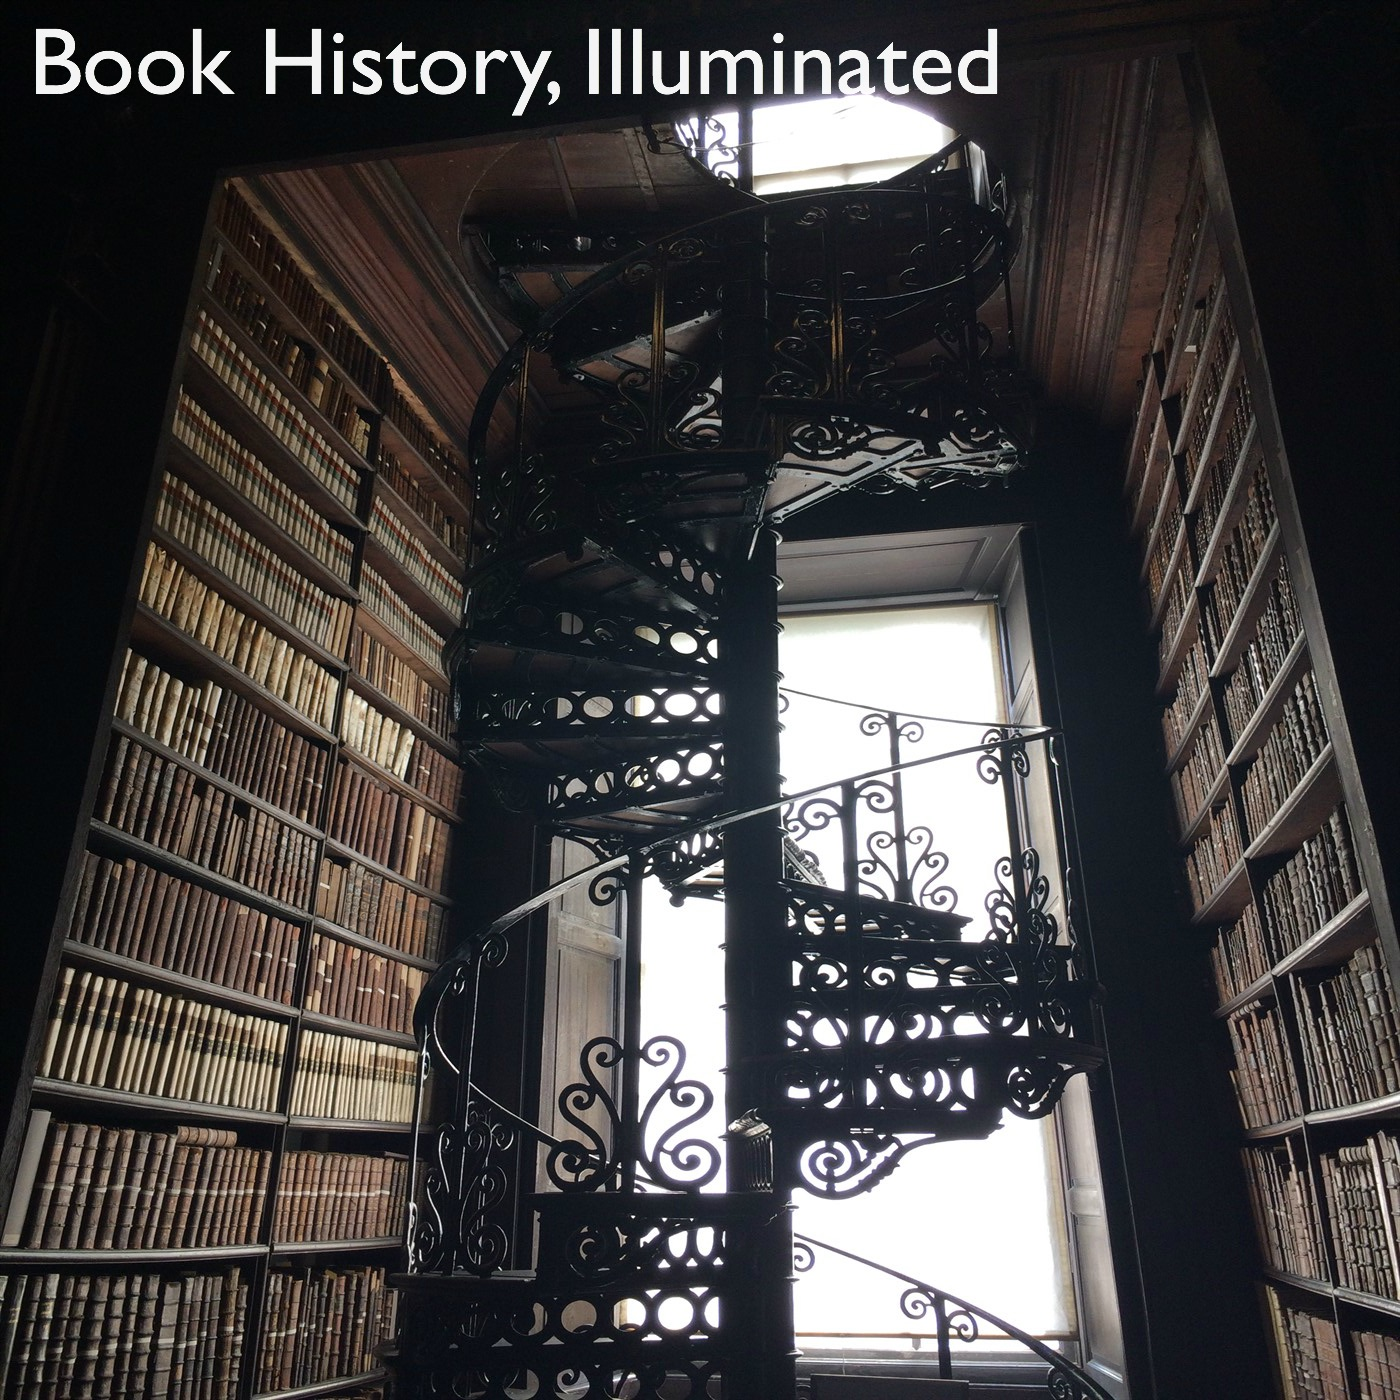 Book History, Illuminated